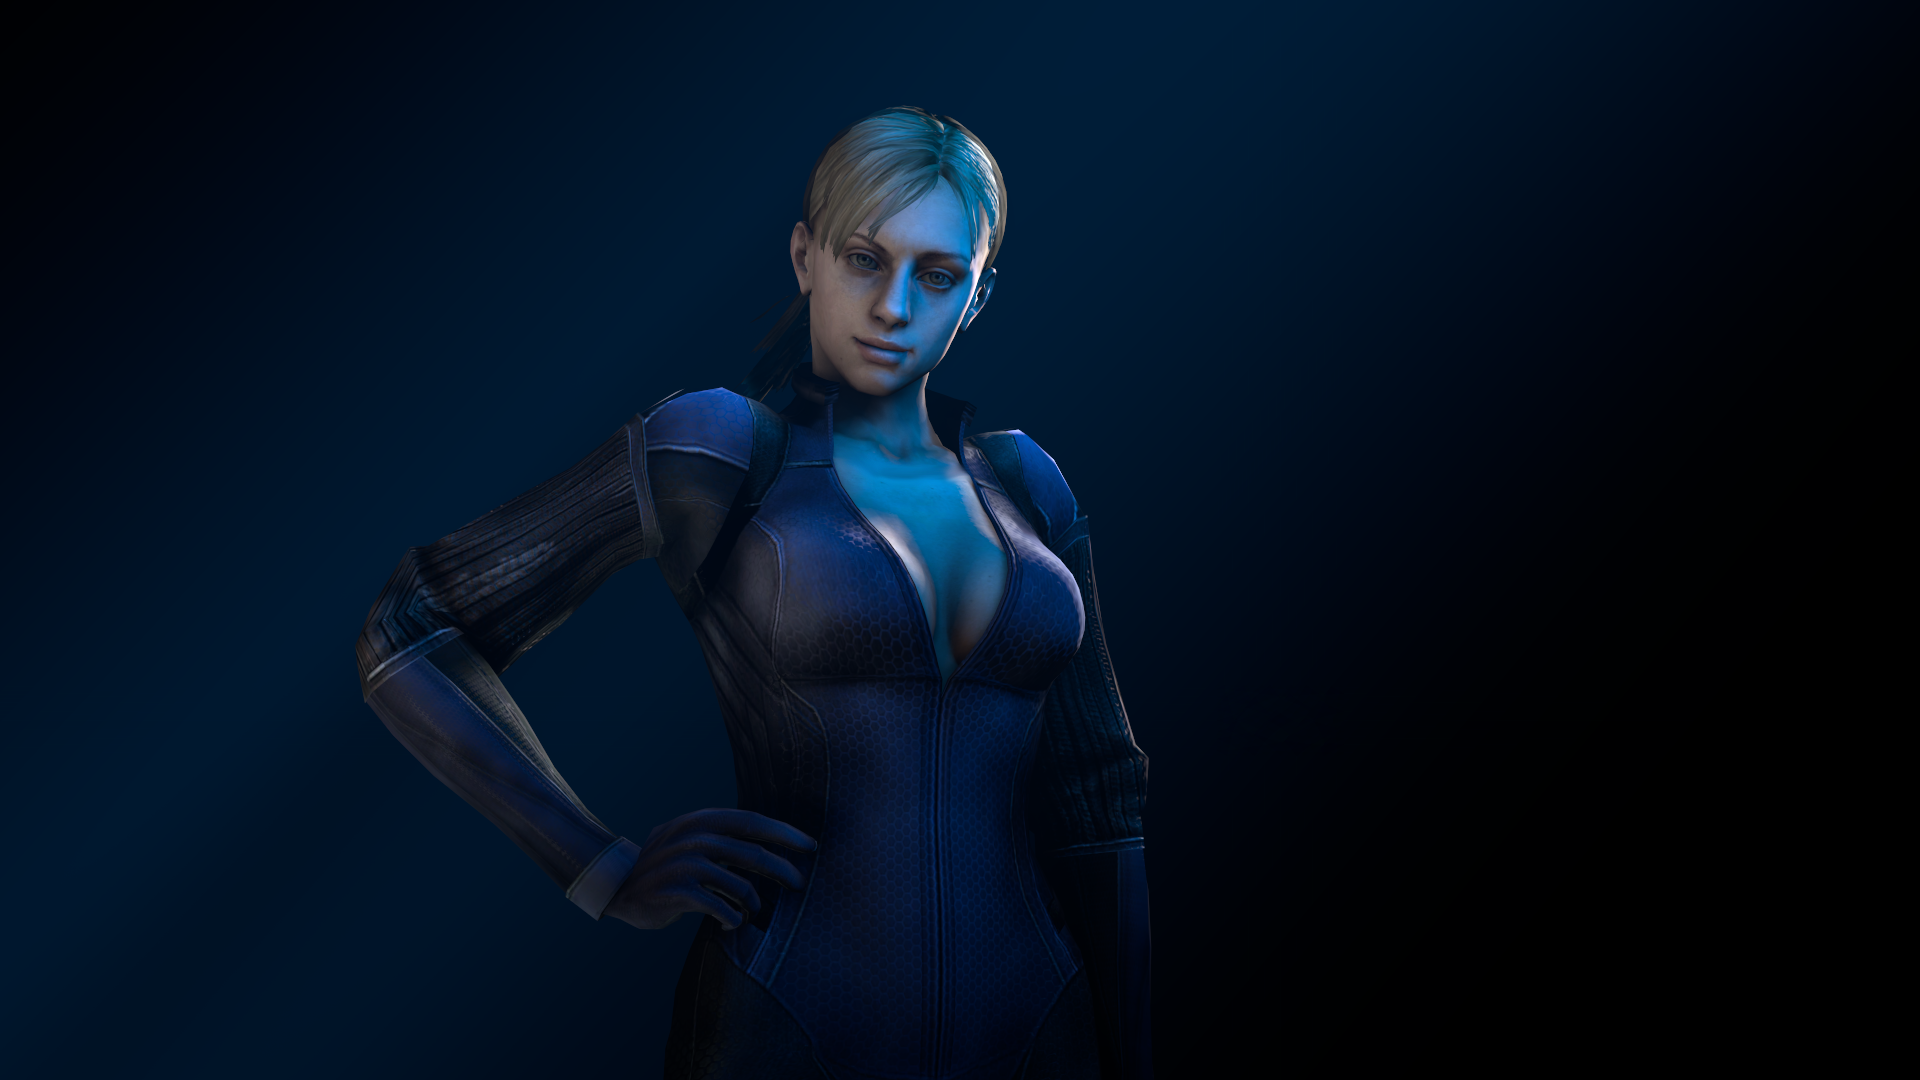 Jill valentine cosplay topless sexy pictures